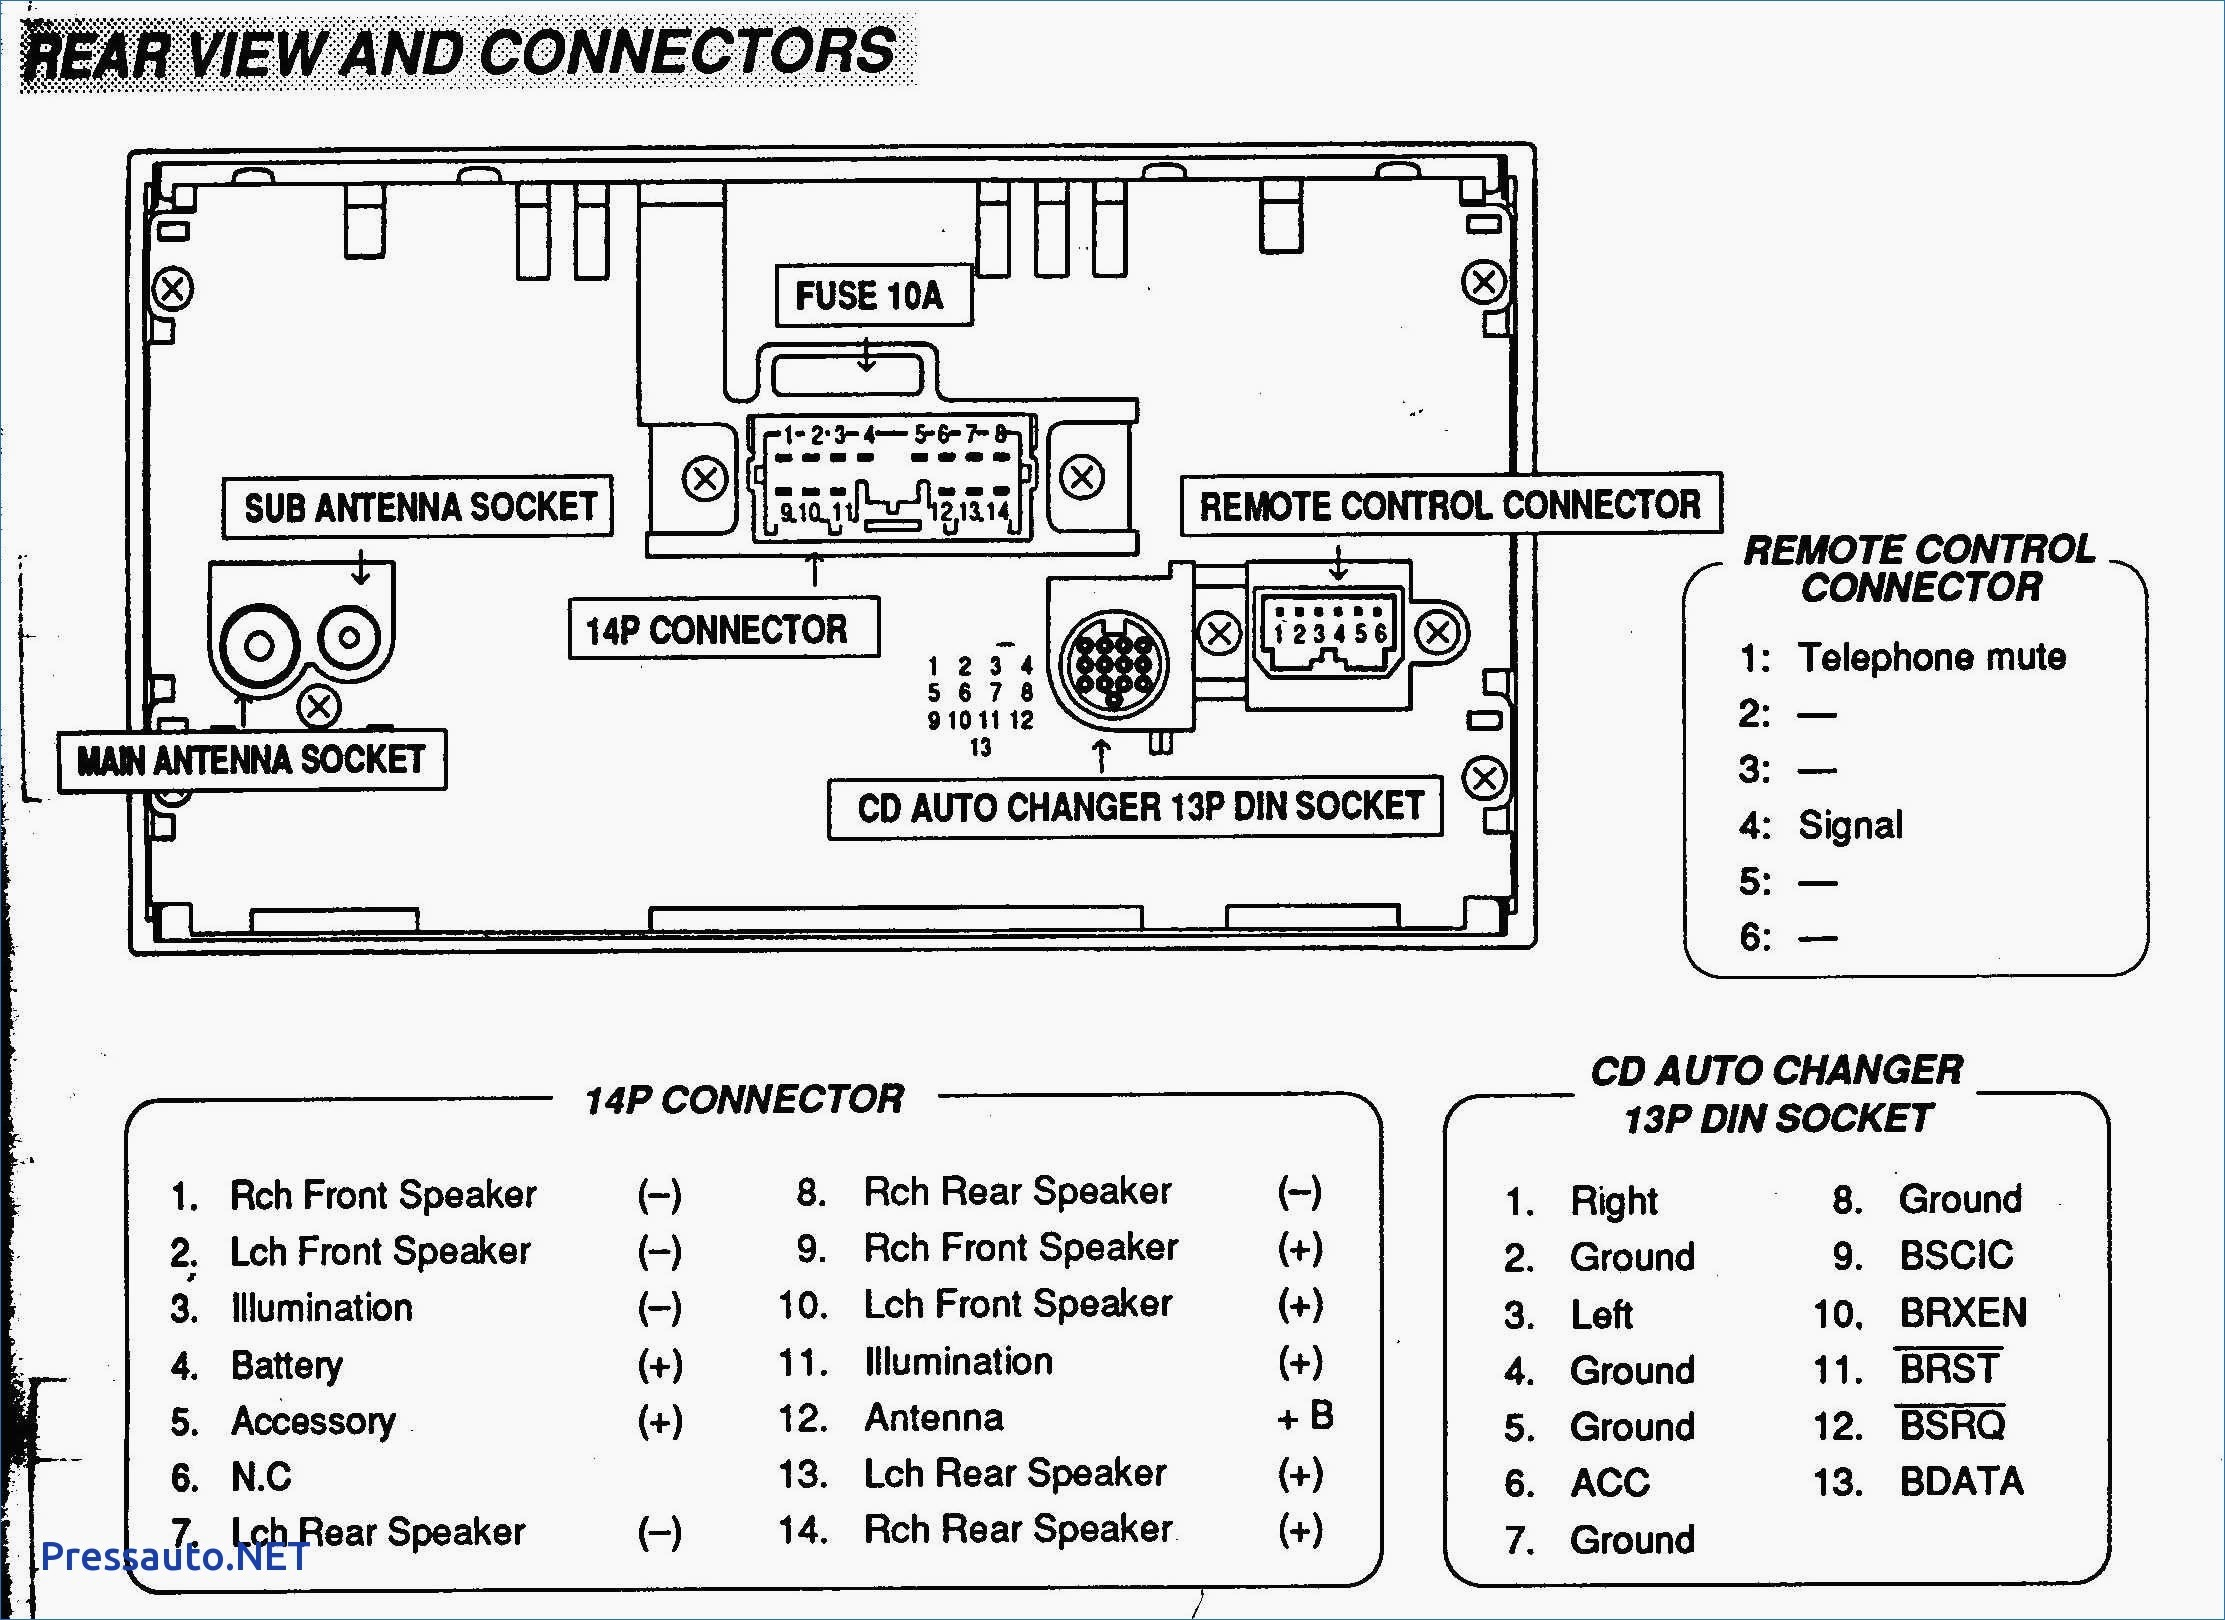 thermo king tripac apu wiring diagram my wiring diagram thermo king nwe max wiring-diagram thermo king tripac apu wiring diagram thermo king models service manual6 and tripac apu wiring diagram